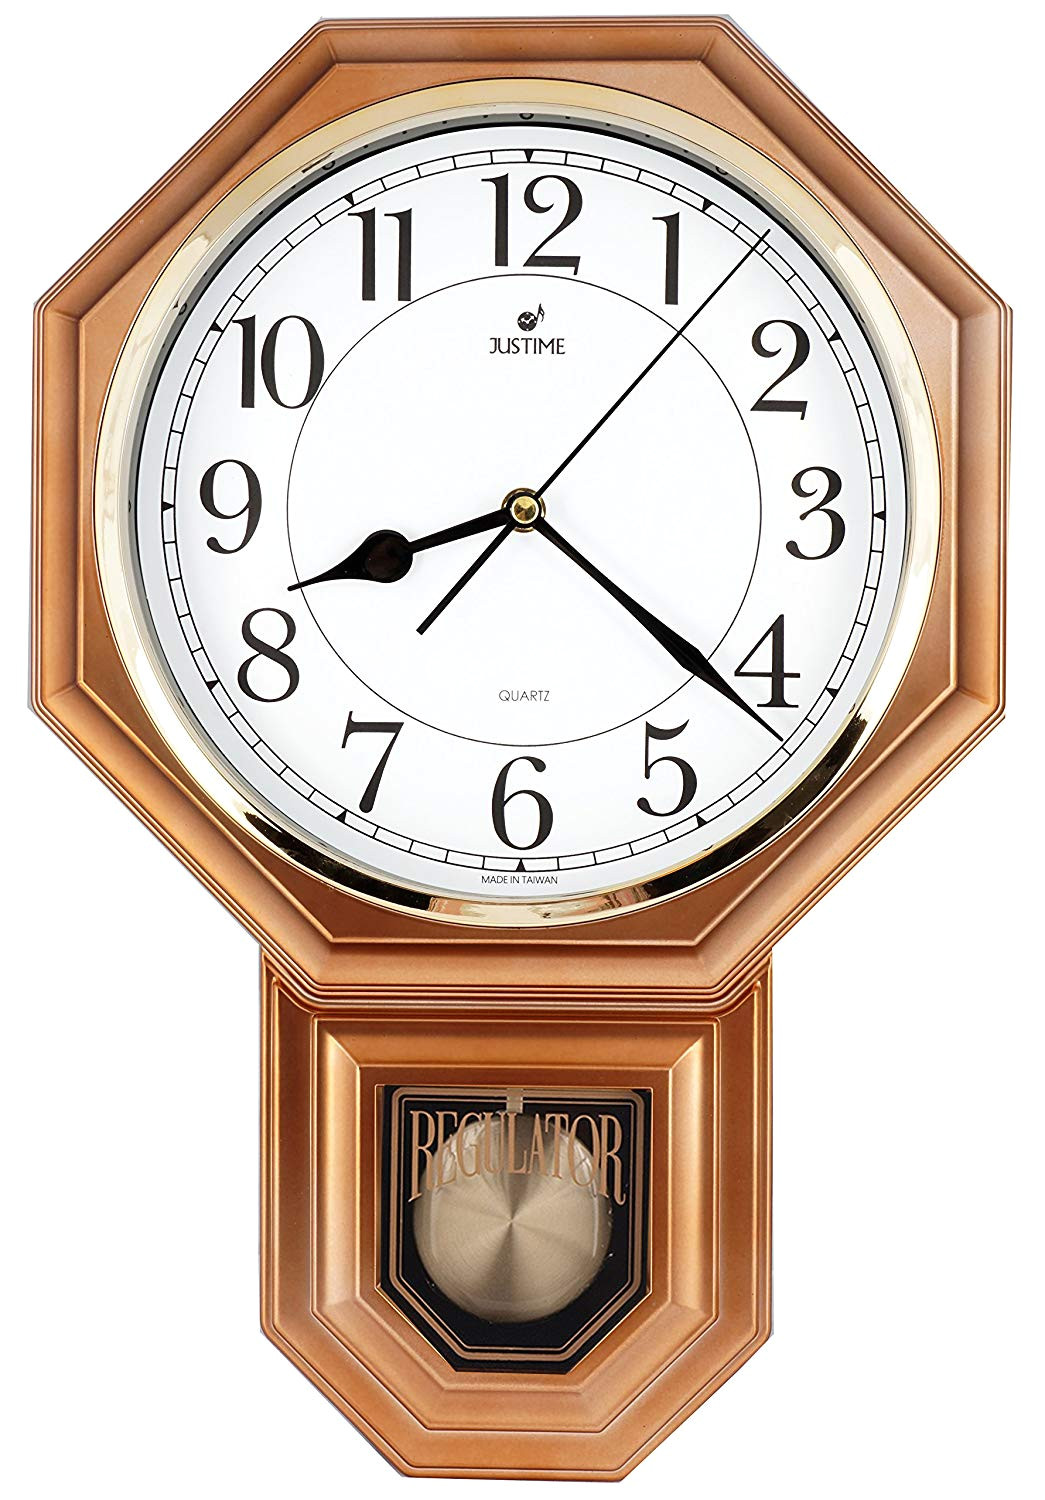 amazon com traditional schoolhouse easy to read pendulum plastic wall clock chimes every hour with westminster melody made in taiwan 4aa batteries